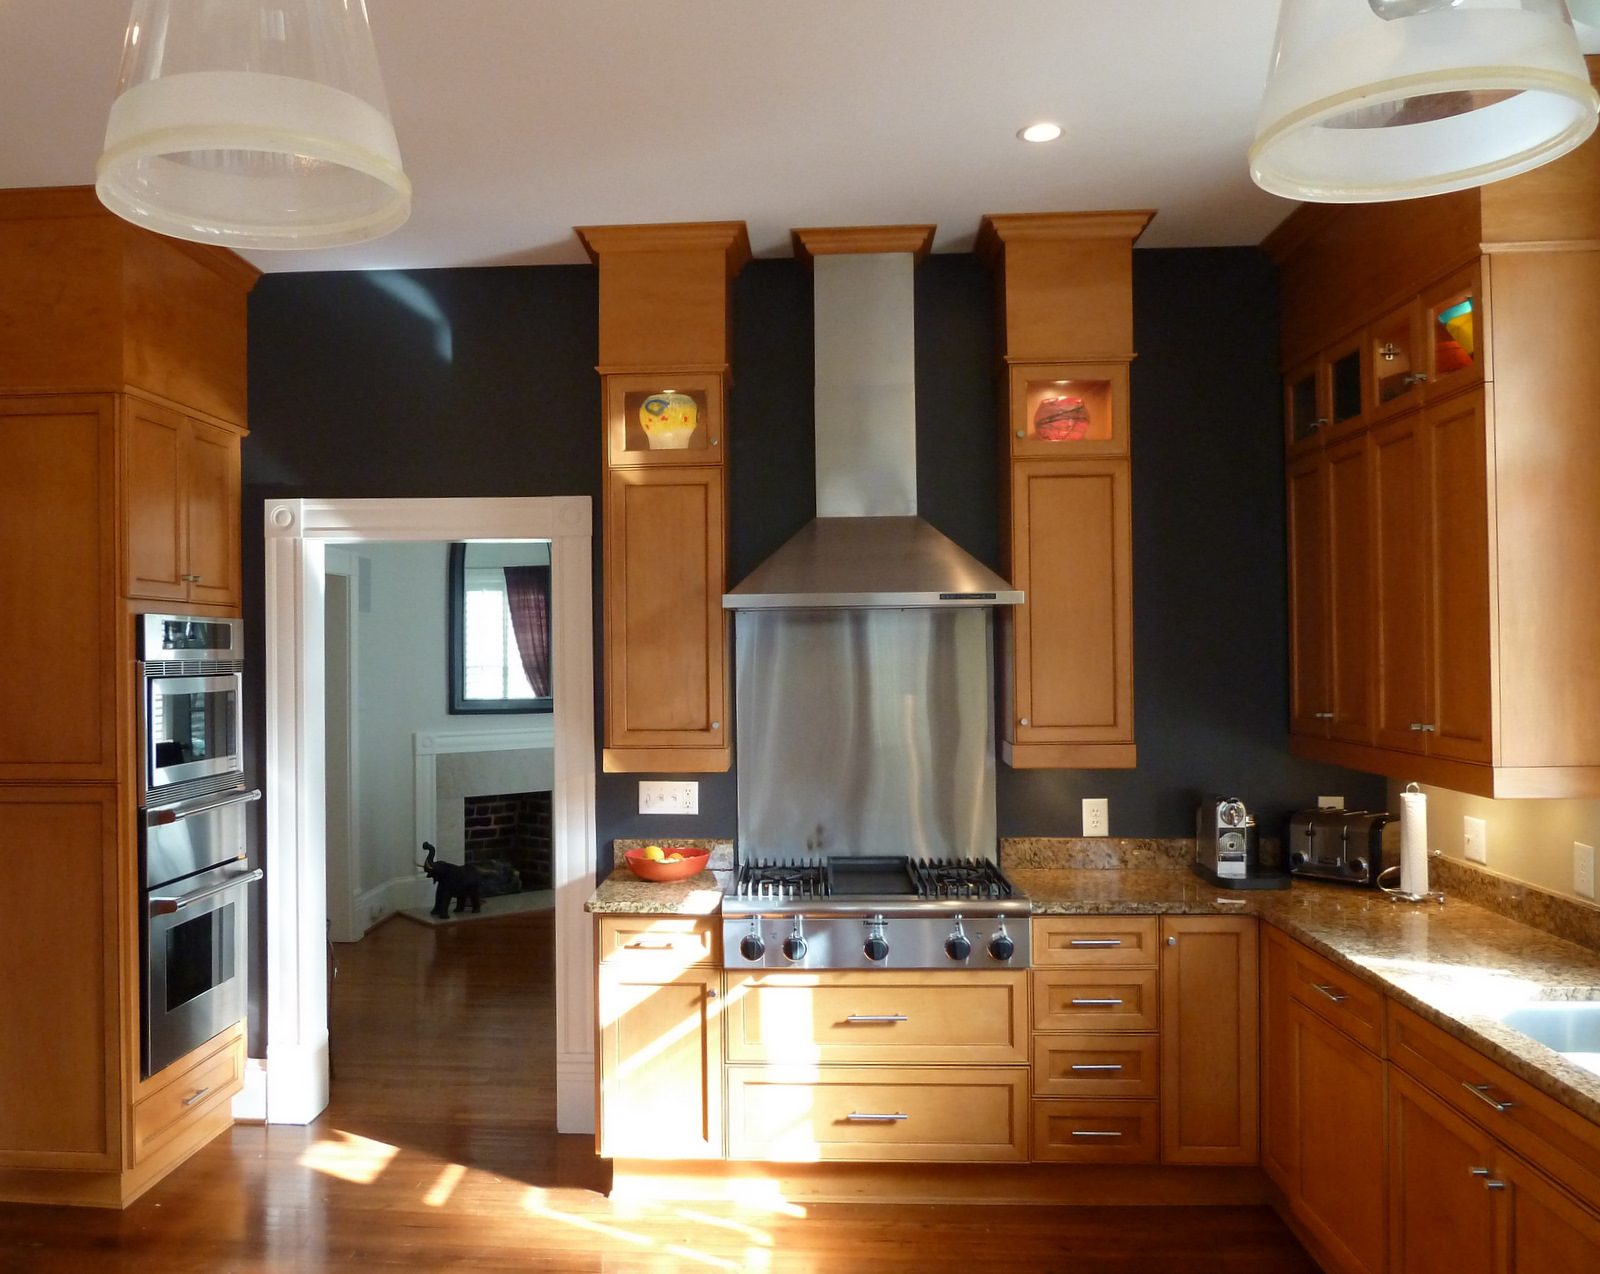 black kitchen cabinets what color on wall black kitchen cabinets and wall color hawk 12394